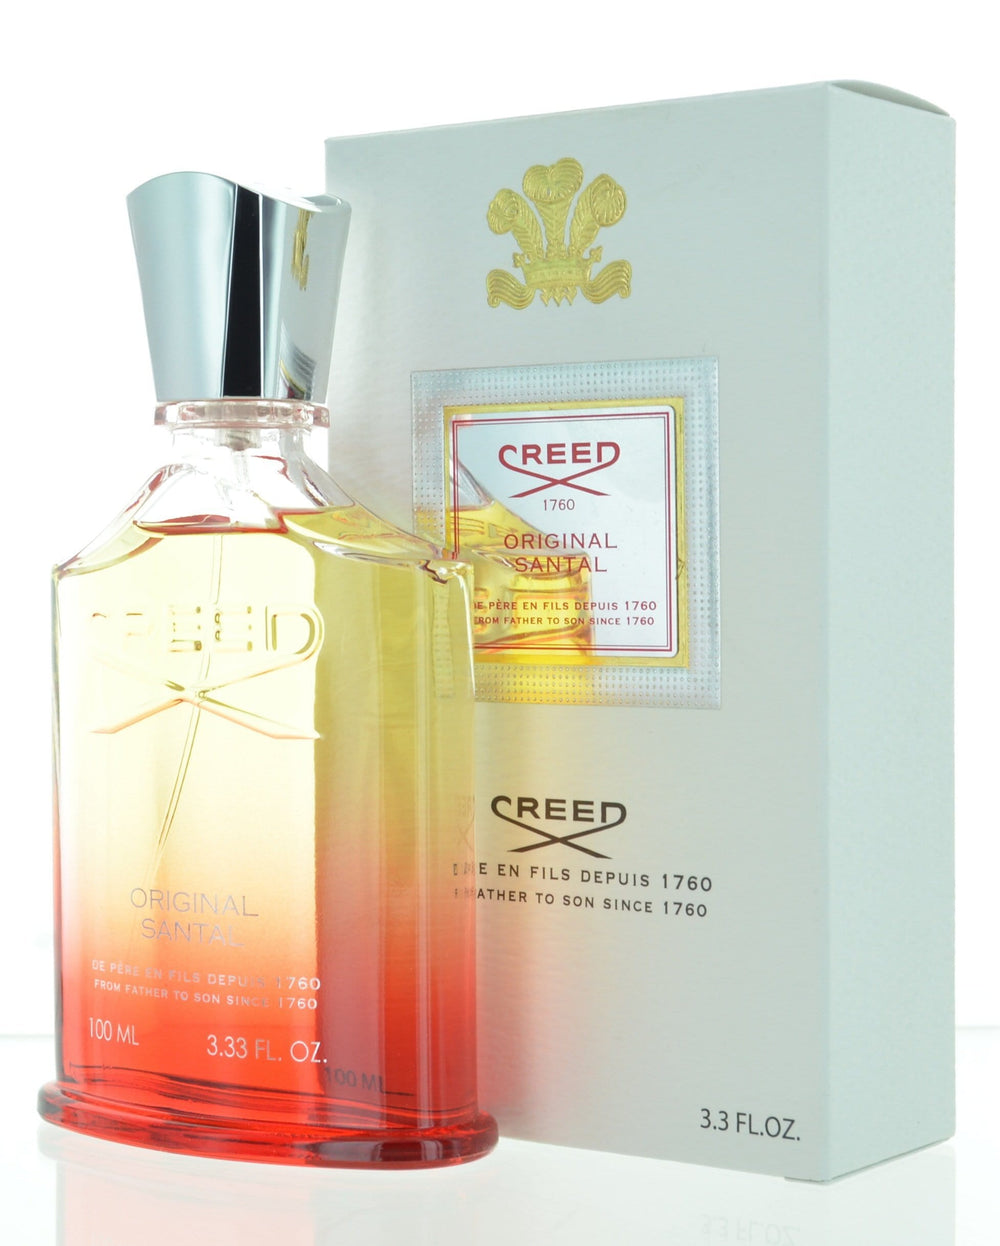 Original Santal by Creed